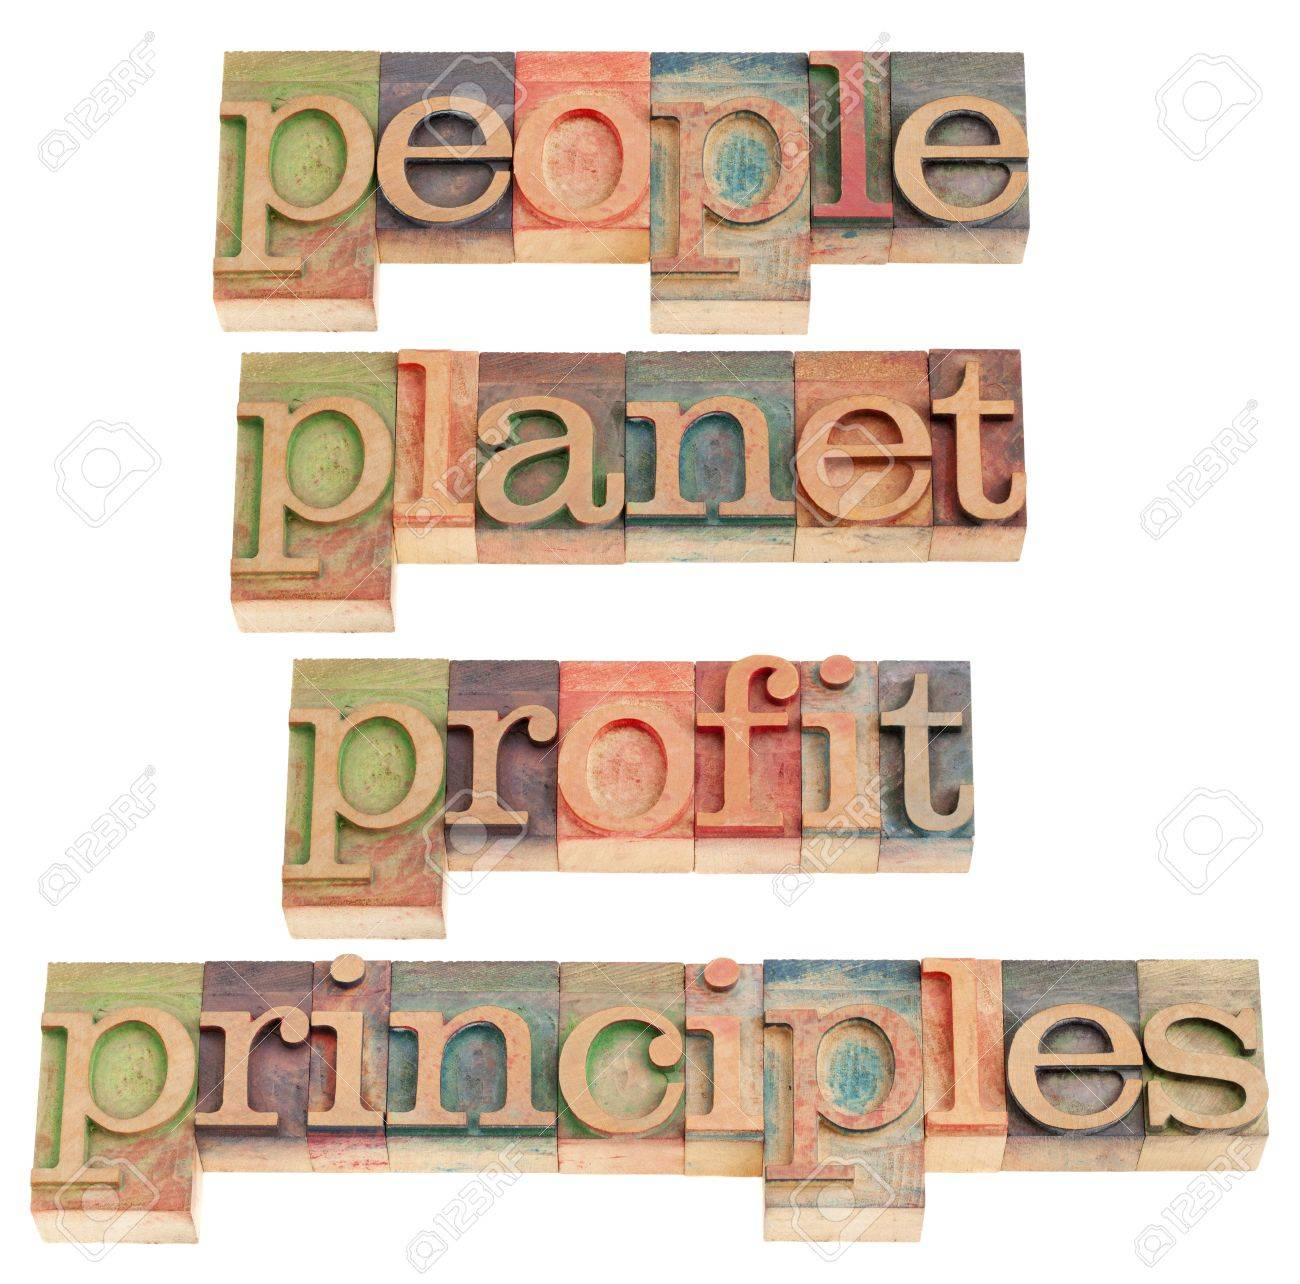 sustainable business concept - people, planet, profit, principles words in vintage wood letterpress printing blocks, isolated on white Stock Photo - 9063435